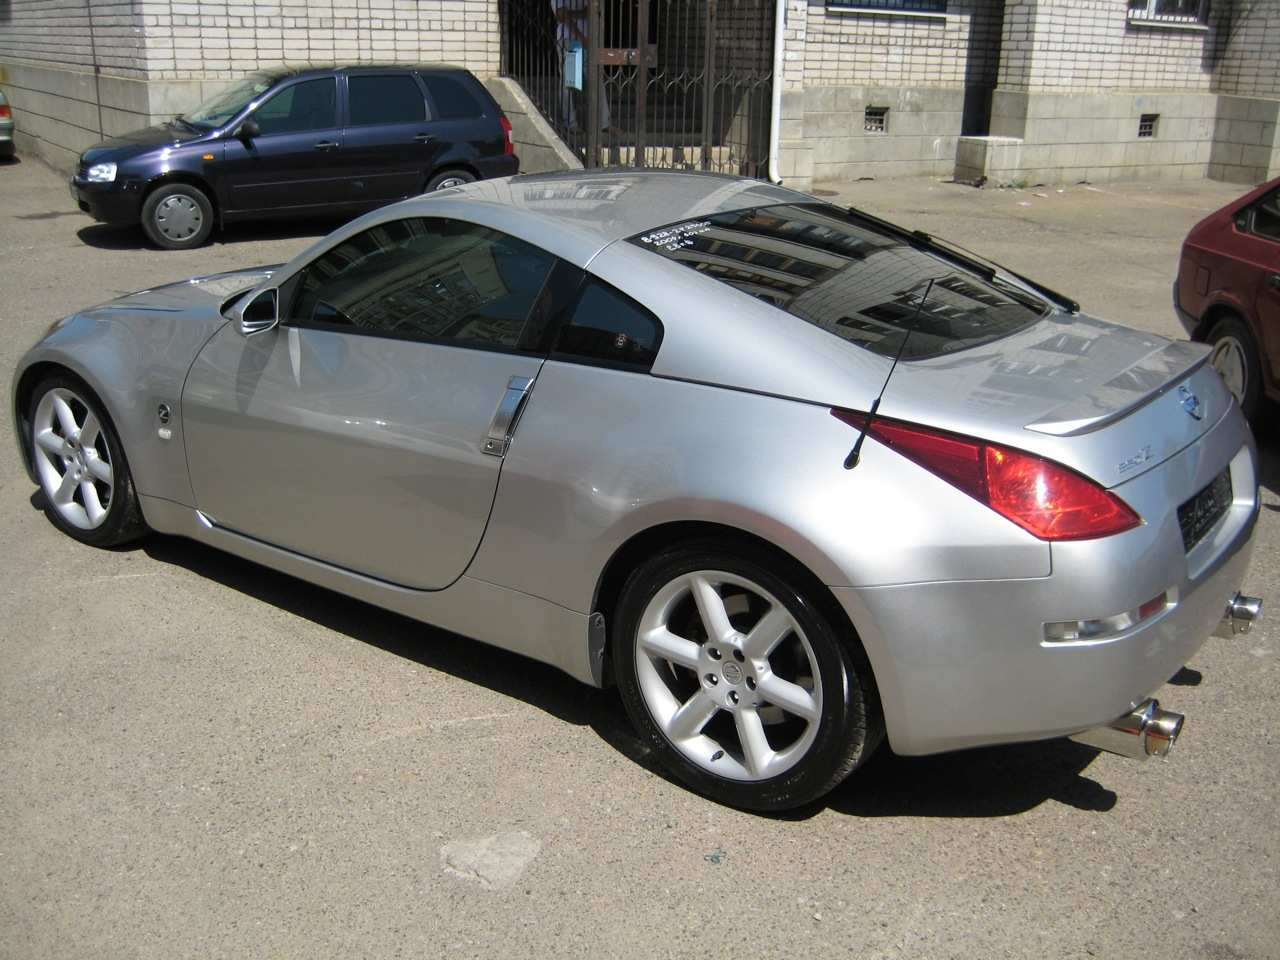 2004 nissan 350z for sale 3498cc gasoline fr or rr. Black Bedroom Furniture Sets. Home Design Ideas